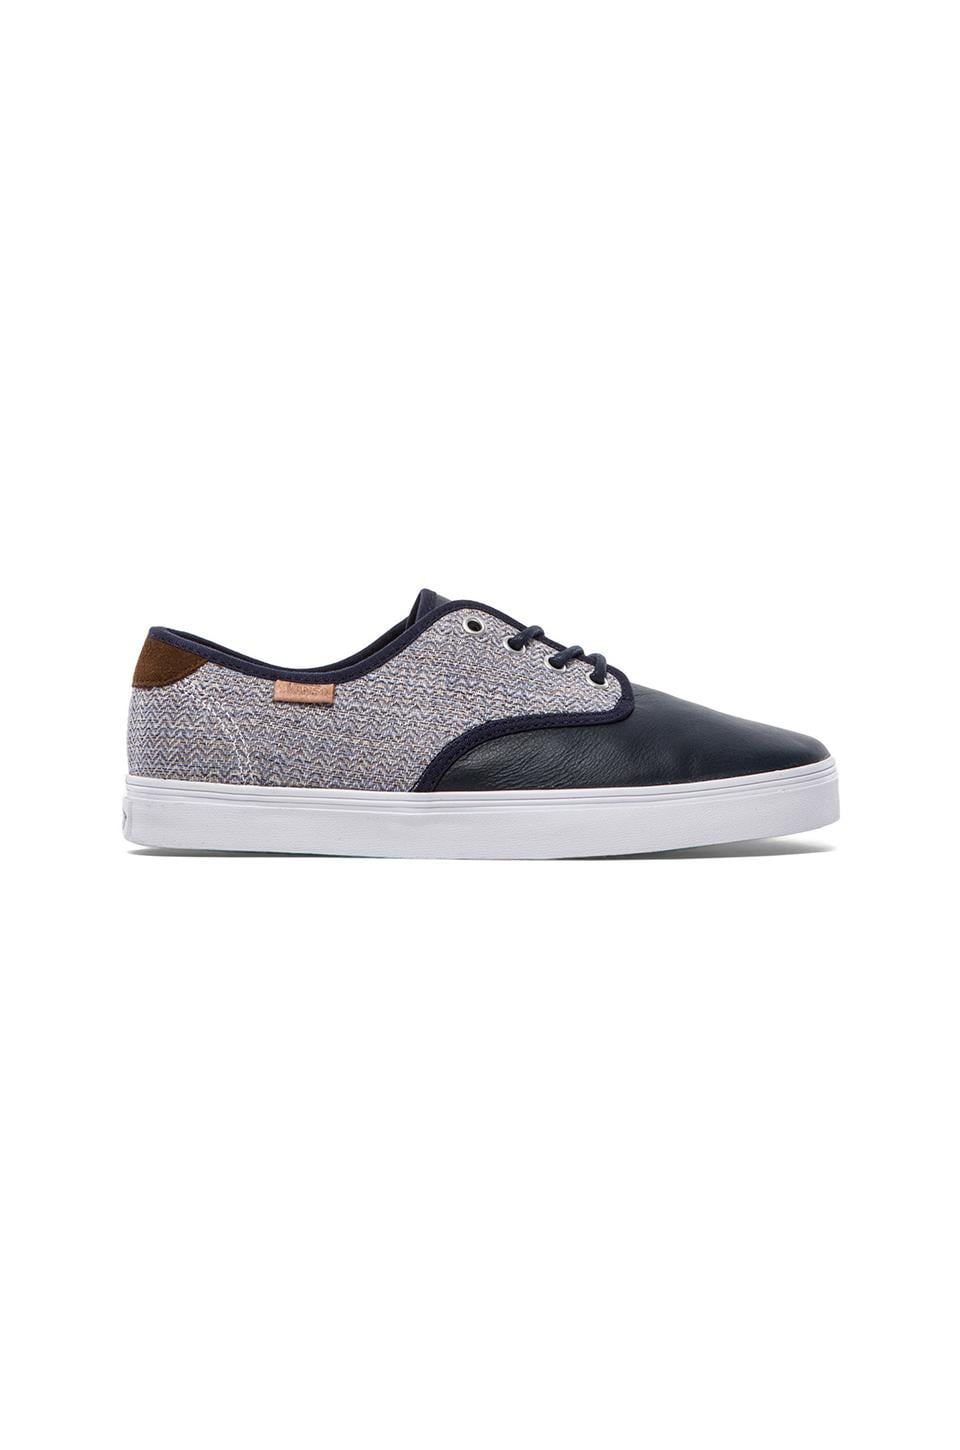 Vans California Madero Primera in Dress Blues